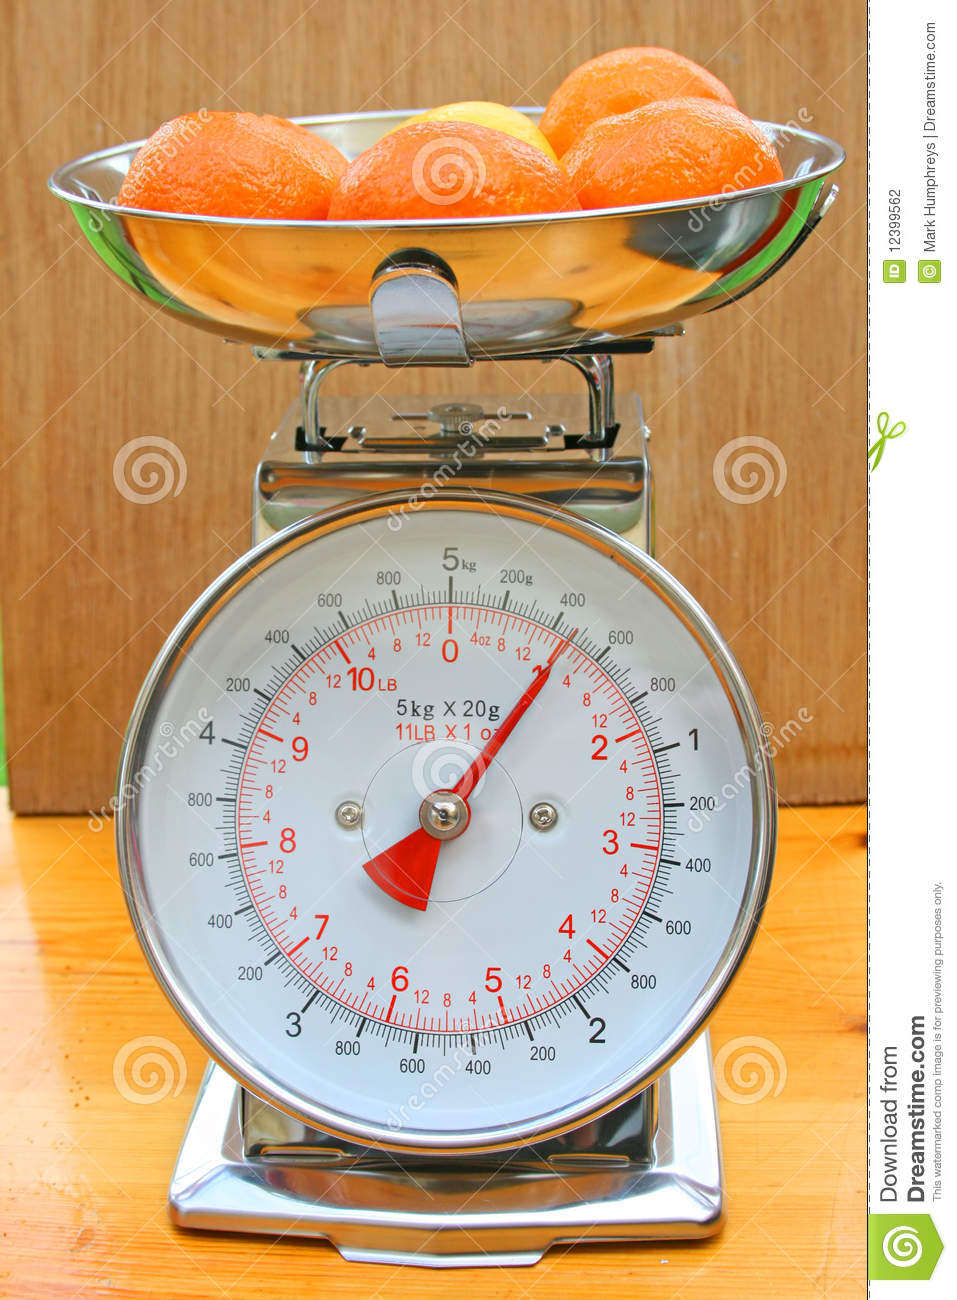 How to Understand amp Read a Kitchen Scale  LEAFtv